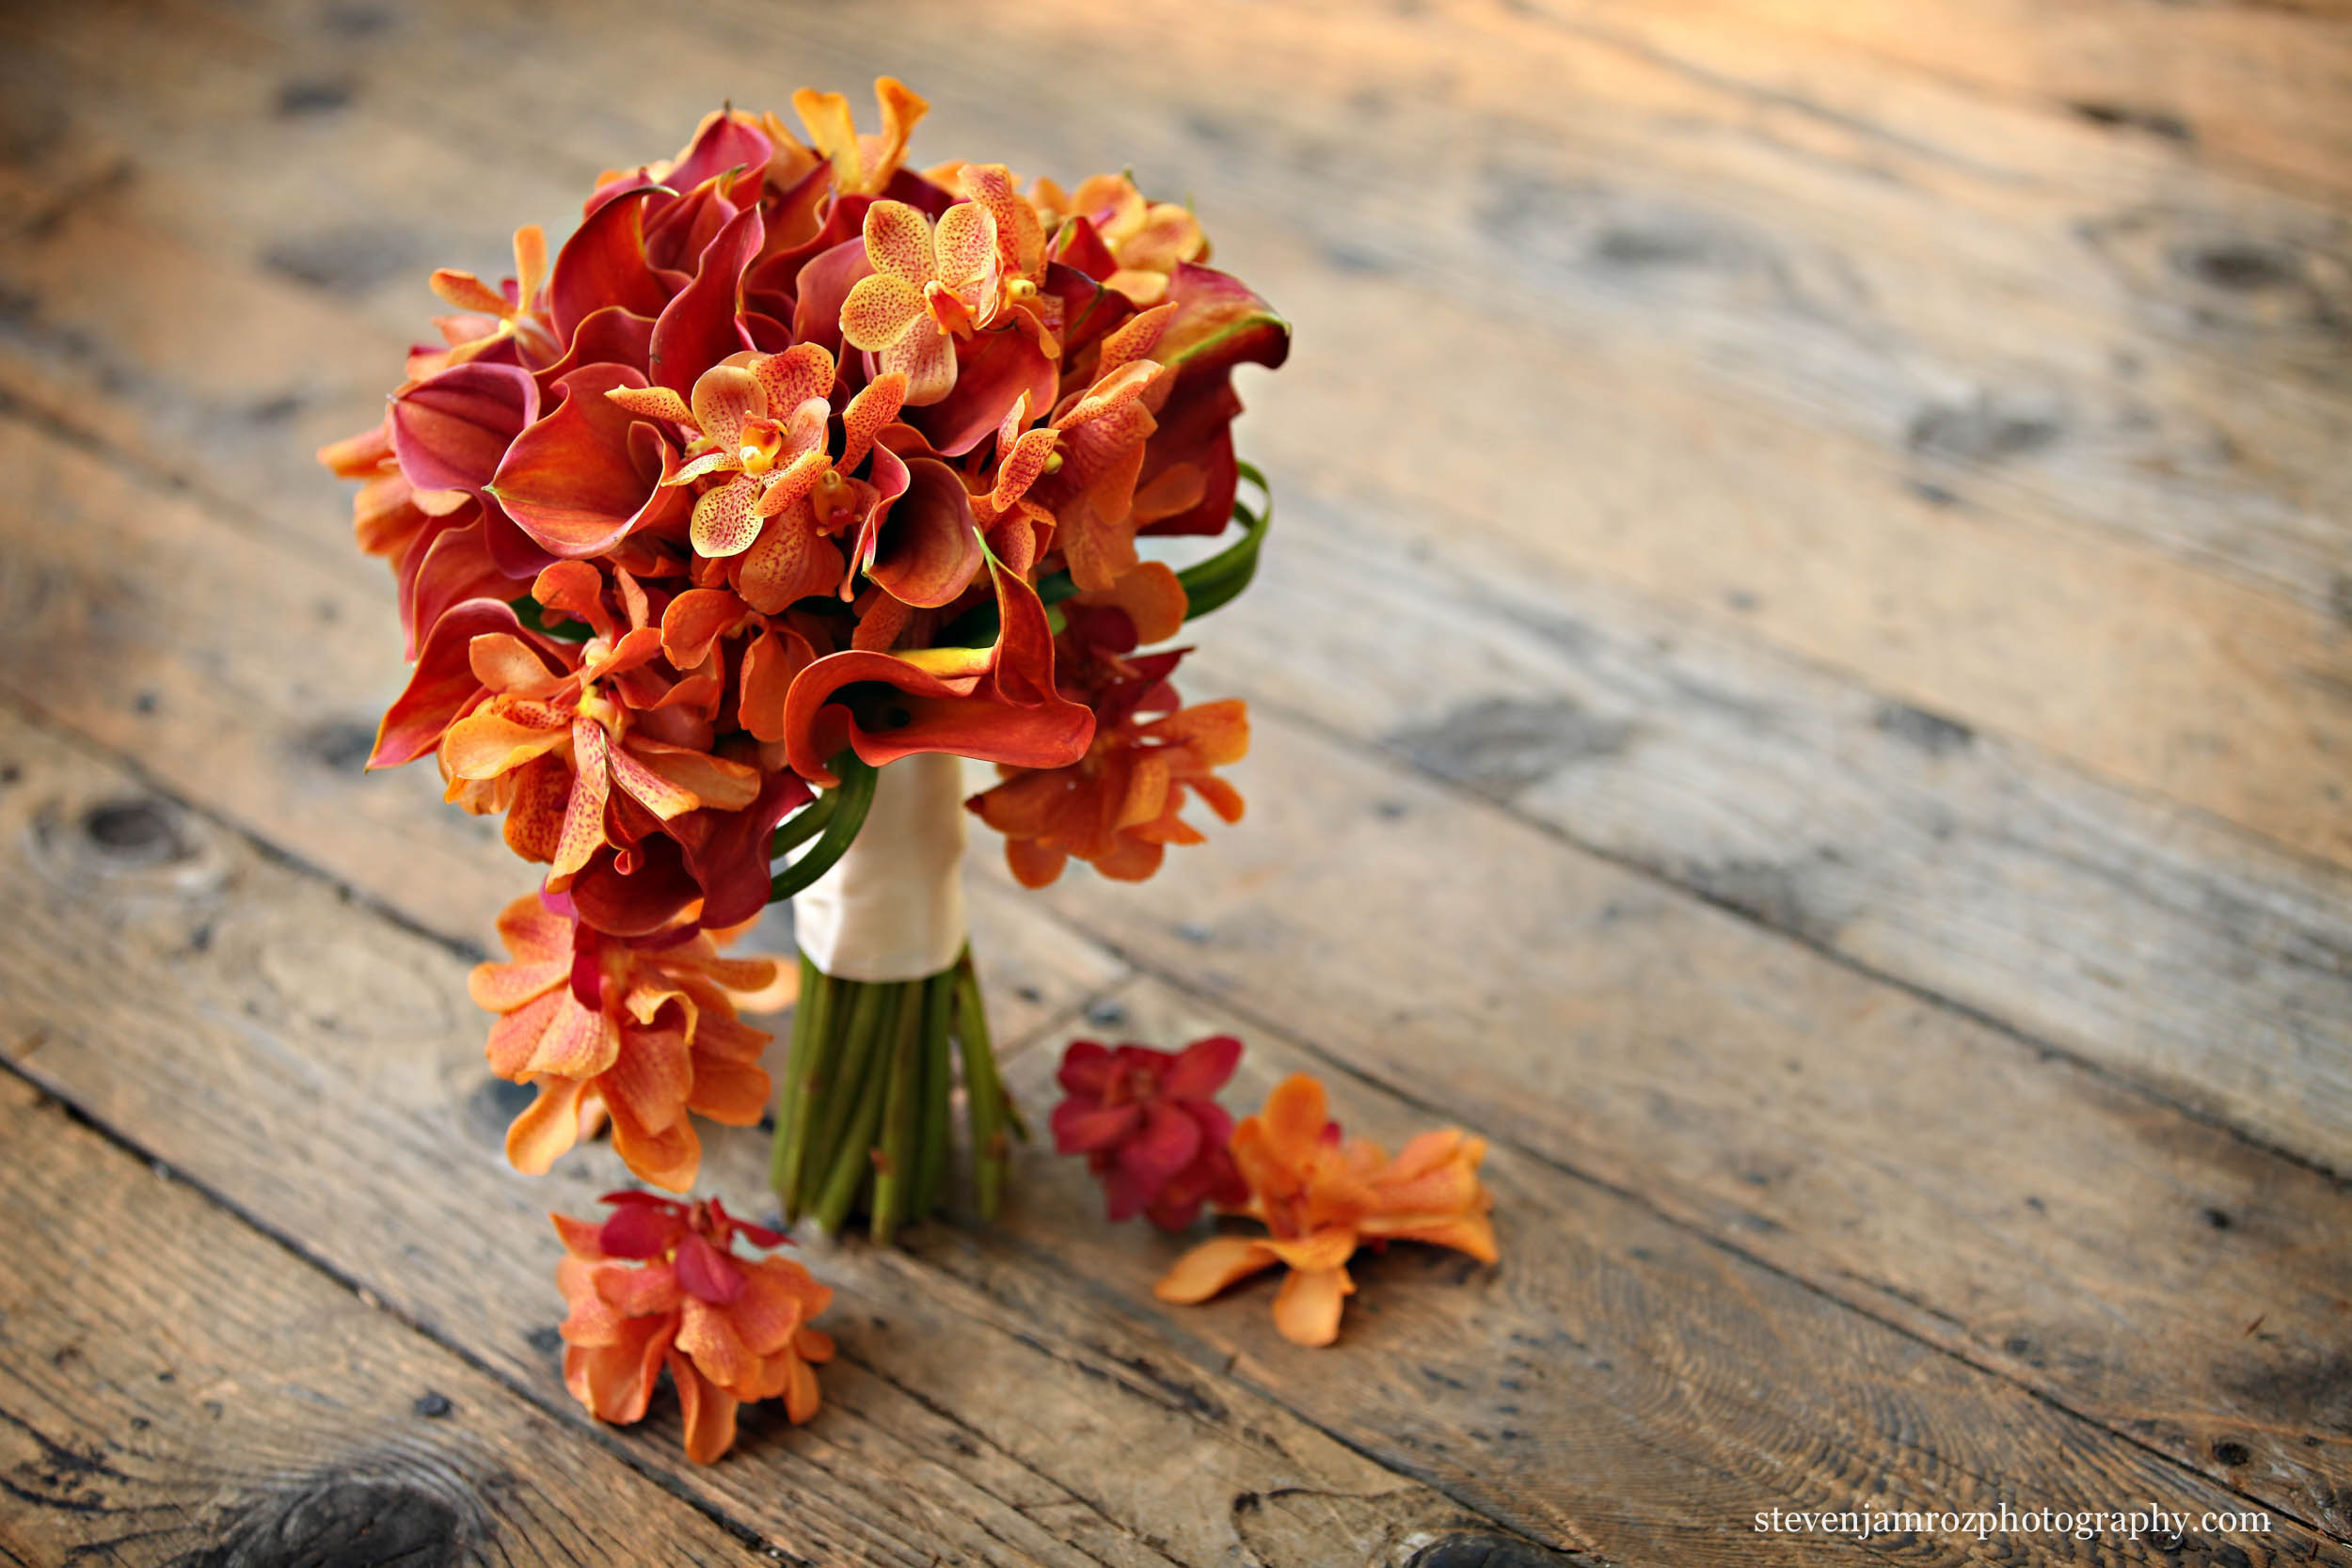 red-orange-flowers-wedding-steven-jamroz-photography-0134.jpg